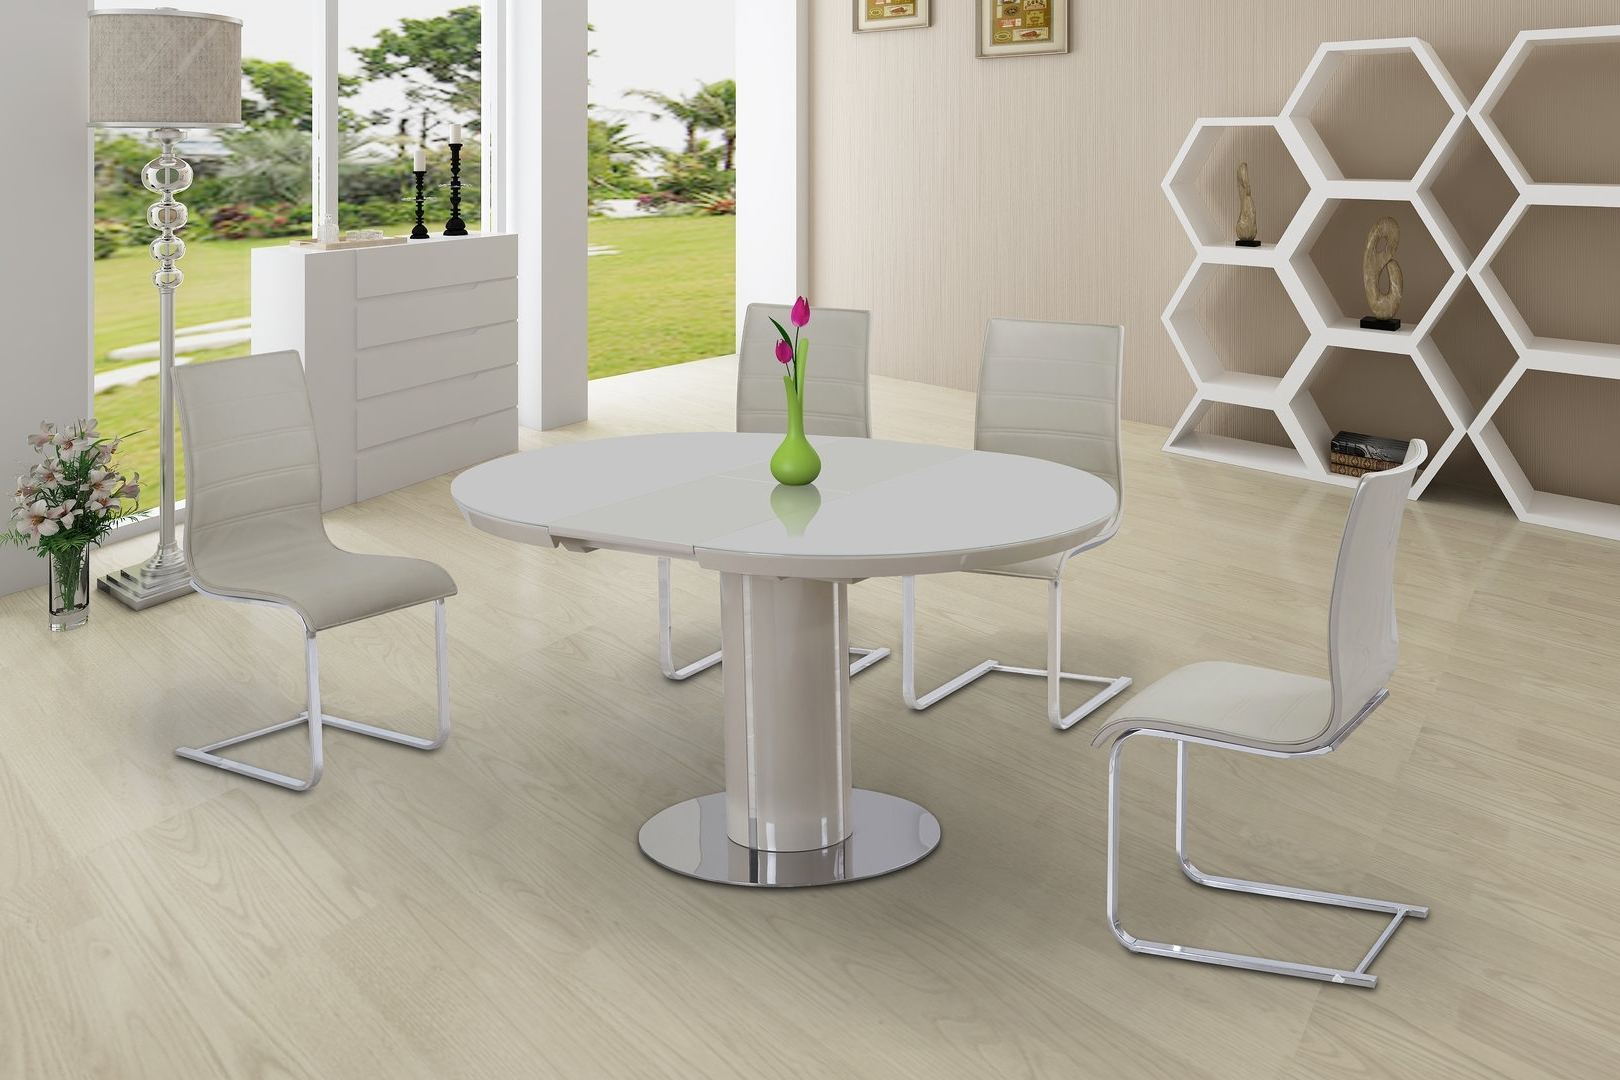 Round Cream Glass High Gloss Dining Table & 4 Chairs – Homegenies Throughout Preferred Cream Gloss Dining Tables And Chairs (View 5 of 25)